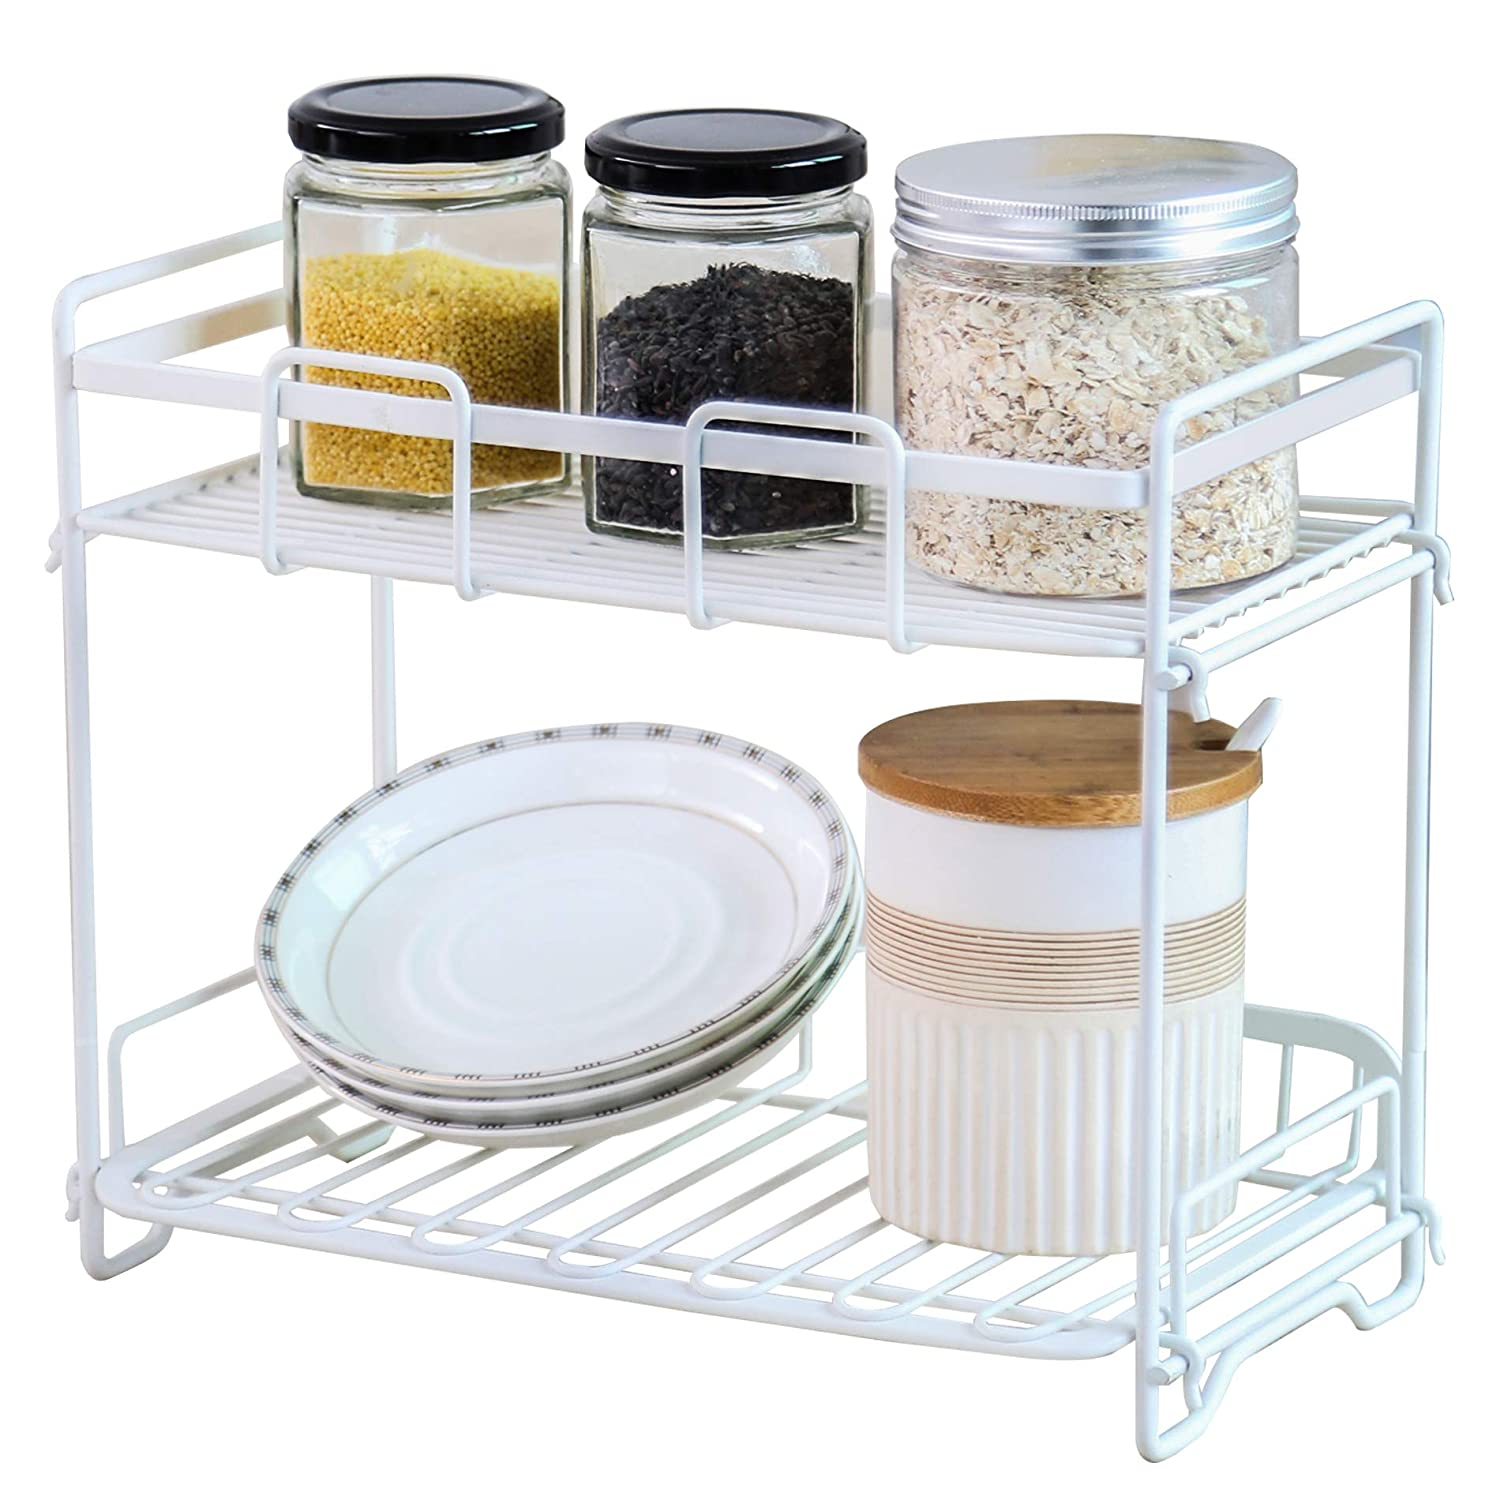 HOMURY 2-Tier Spice Rack Organizer,Free Standing Holder for Kitchen and Bathroom,BSR202701MW,White